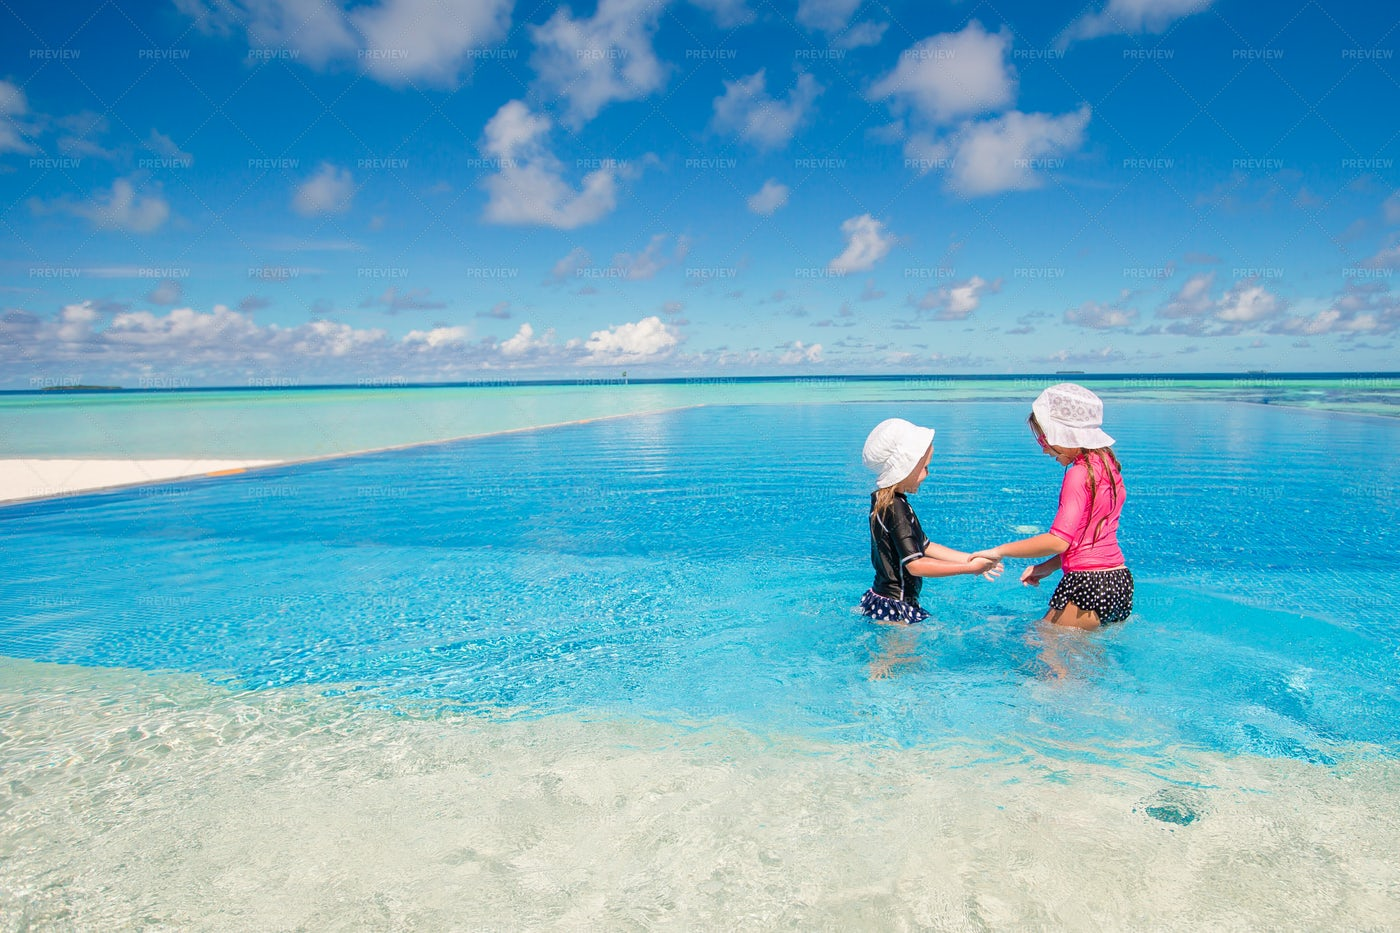 Sisters Playing In Infinity Pool: Stock Photos